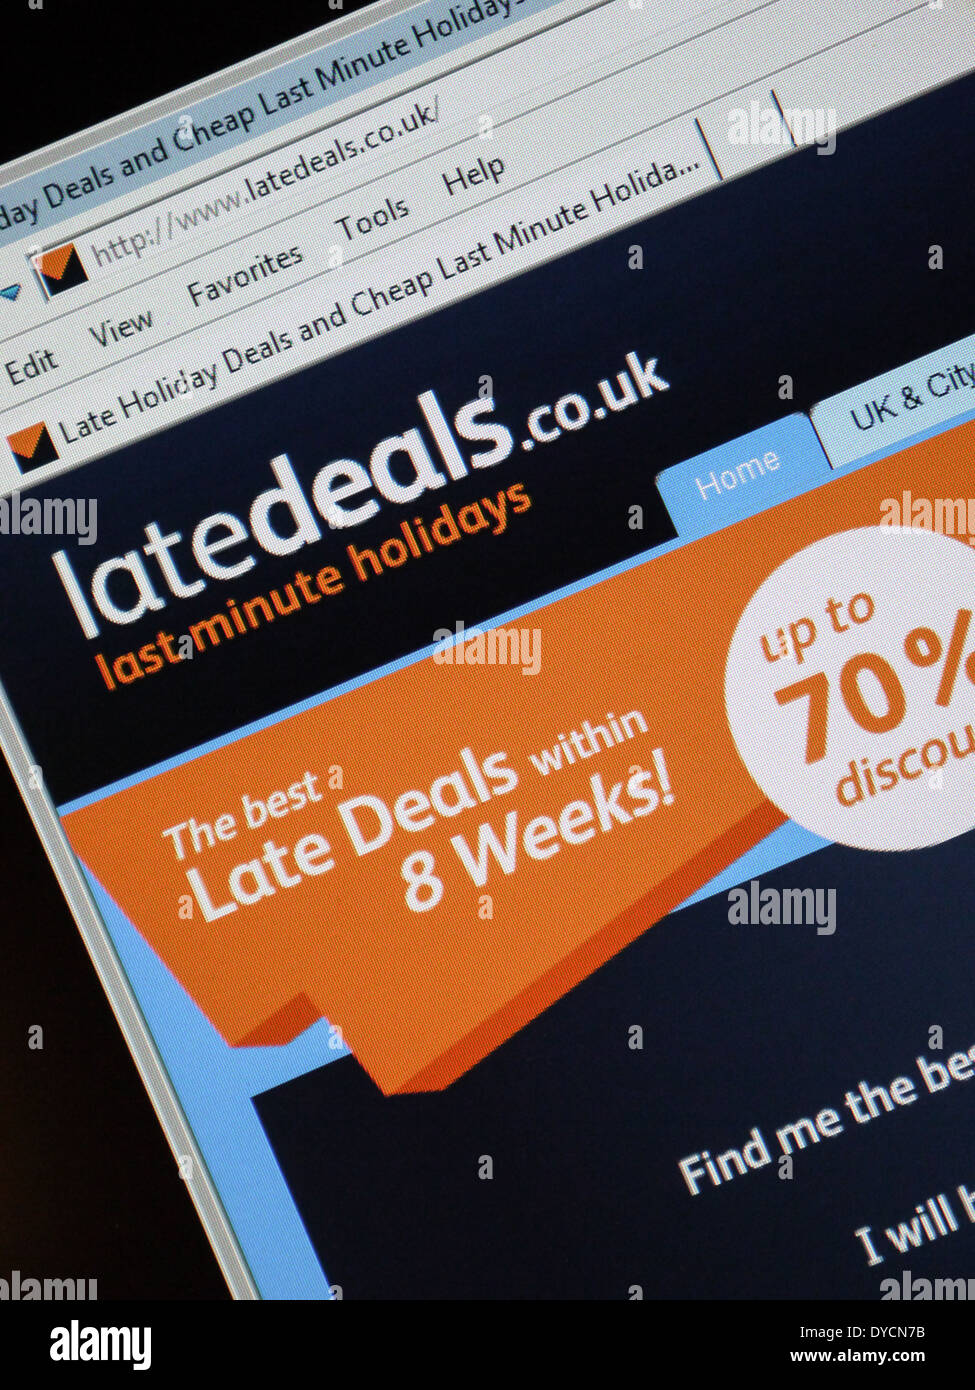 last minute holiday deal website latedeals - Stock Image